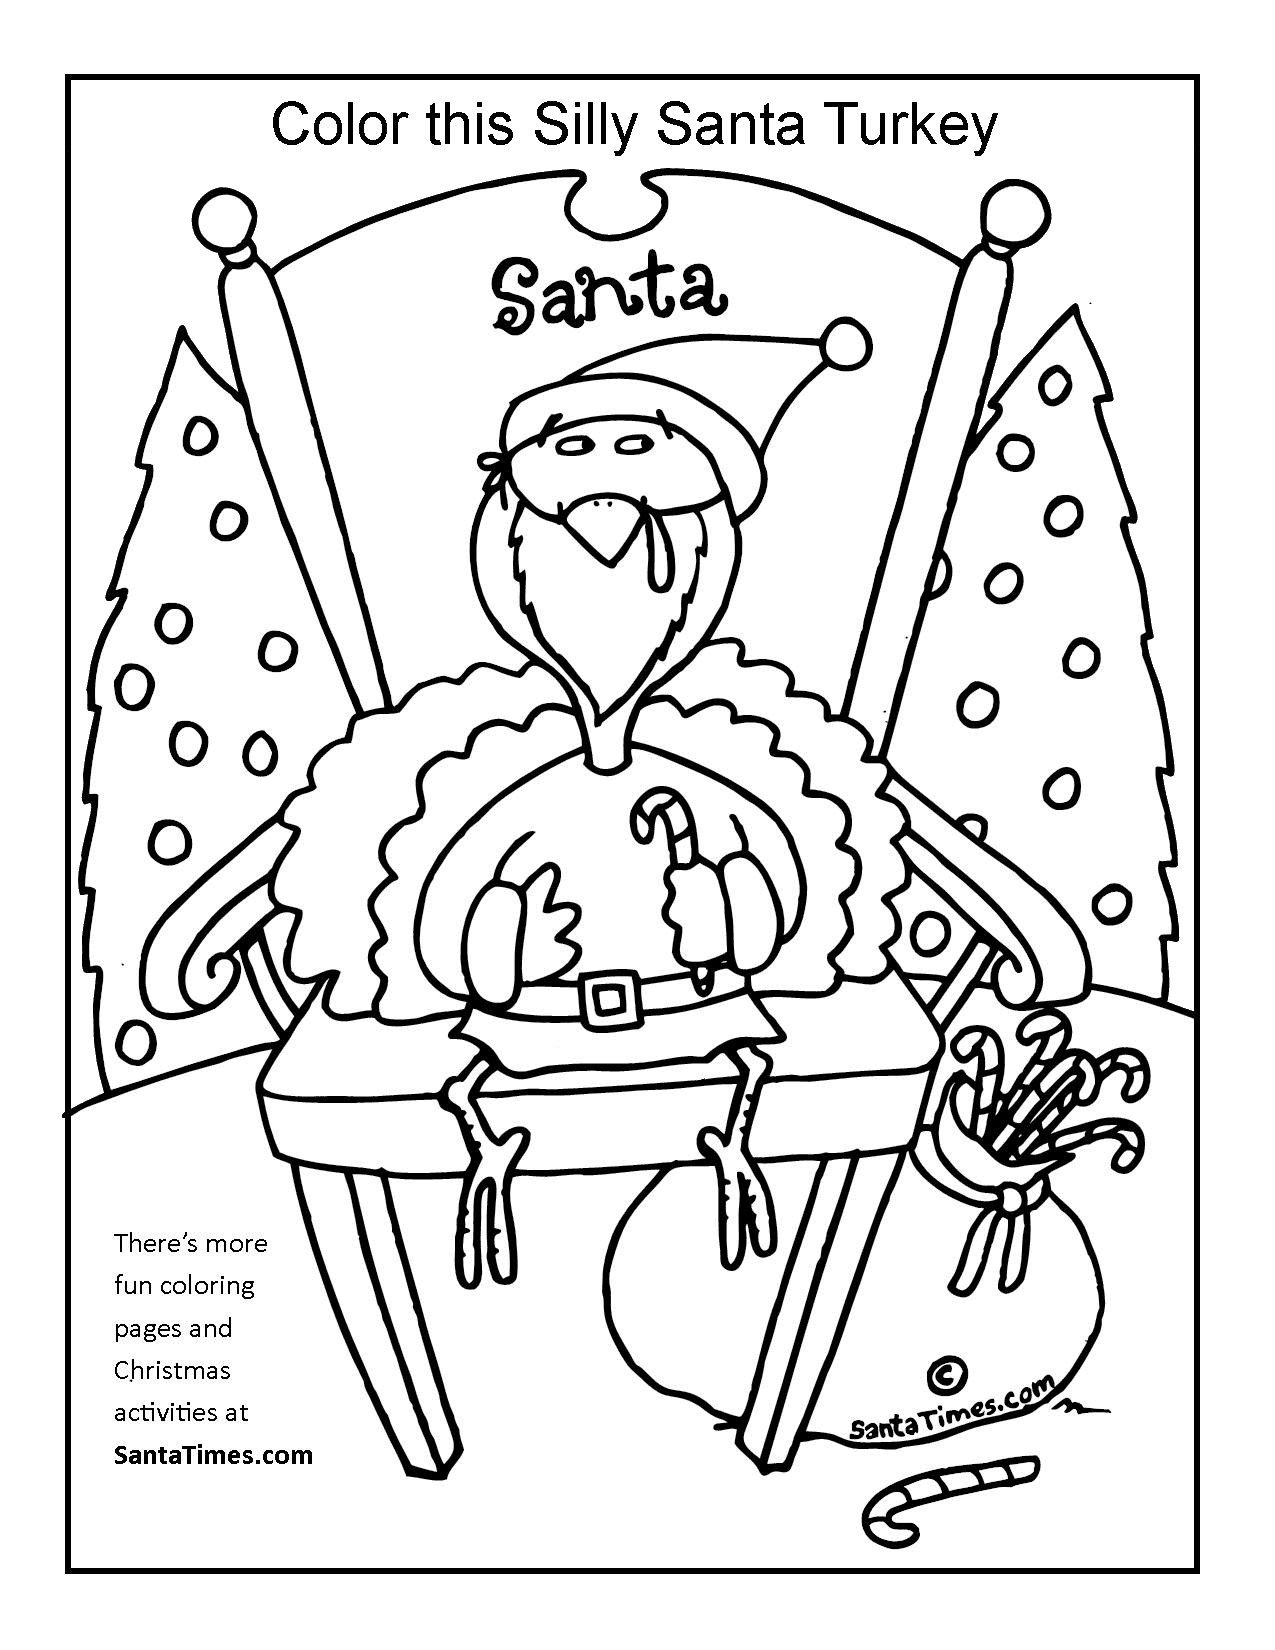 Silly Santa Turkey Coloring Page Gt More Fun Christmas Activities And Coloring Pages At